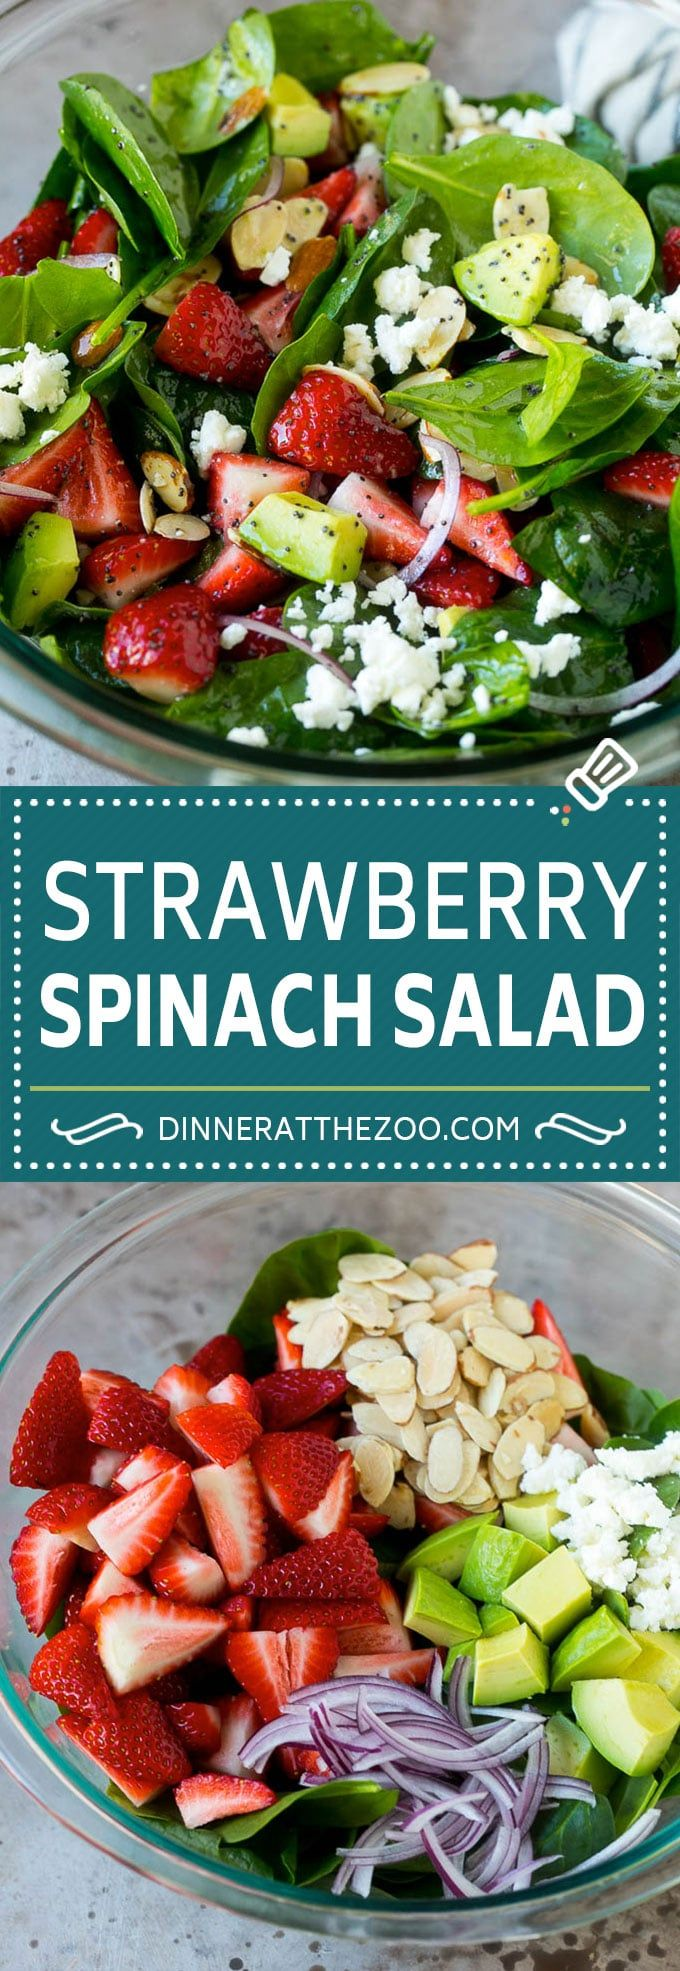 Photo of Strawberry Spinach Salad